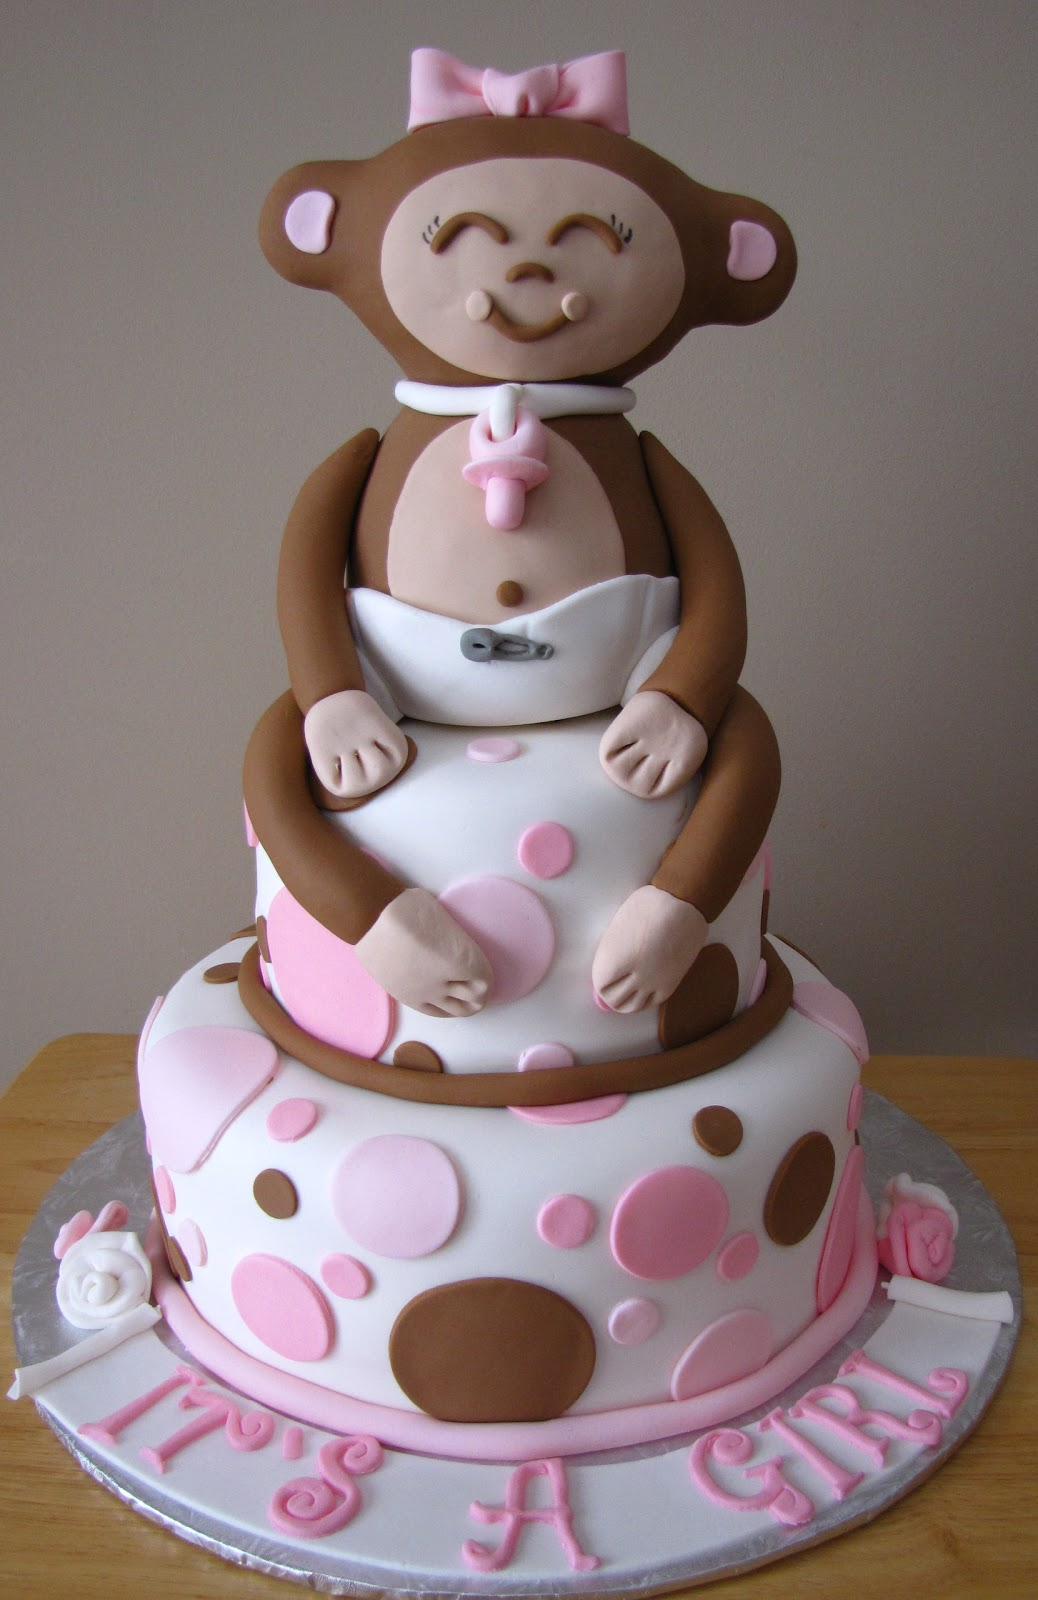 Ann Marie's Creative Cakes: Monkey Cake And Cookies